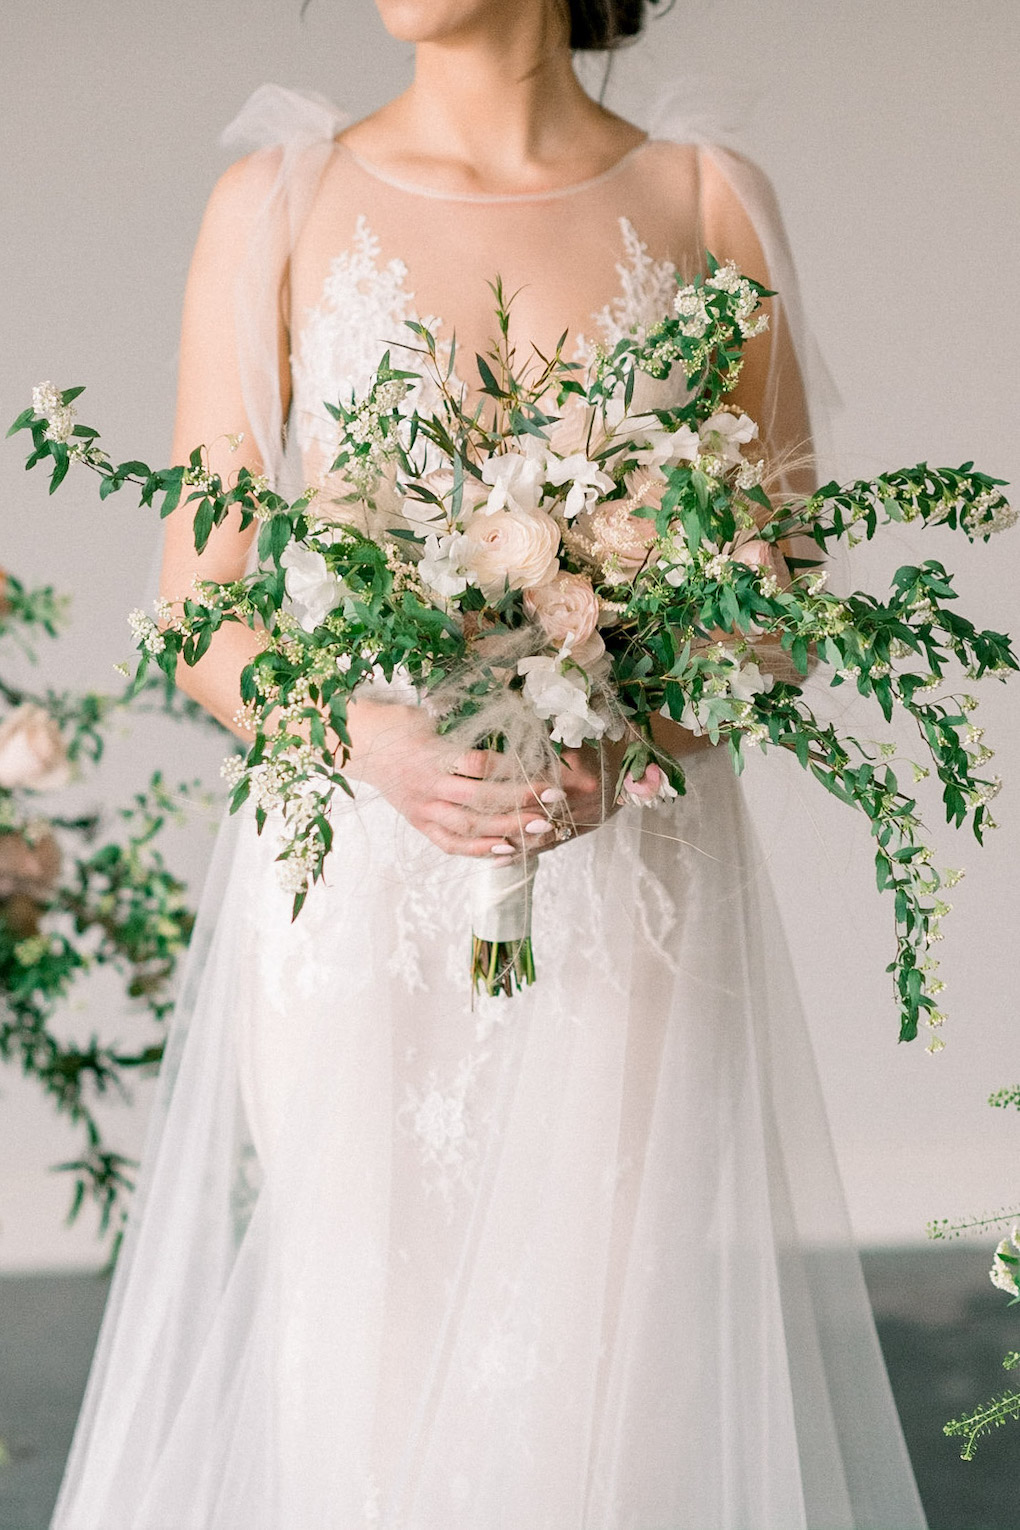 Loose and modern wedding bouquet: Soft and Subtle Palettes of Spring Blossoms | Editorial Shoot at The Renaissance Pittsburgh by Exhale Events. See more inspiration at exhale-events.com!